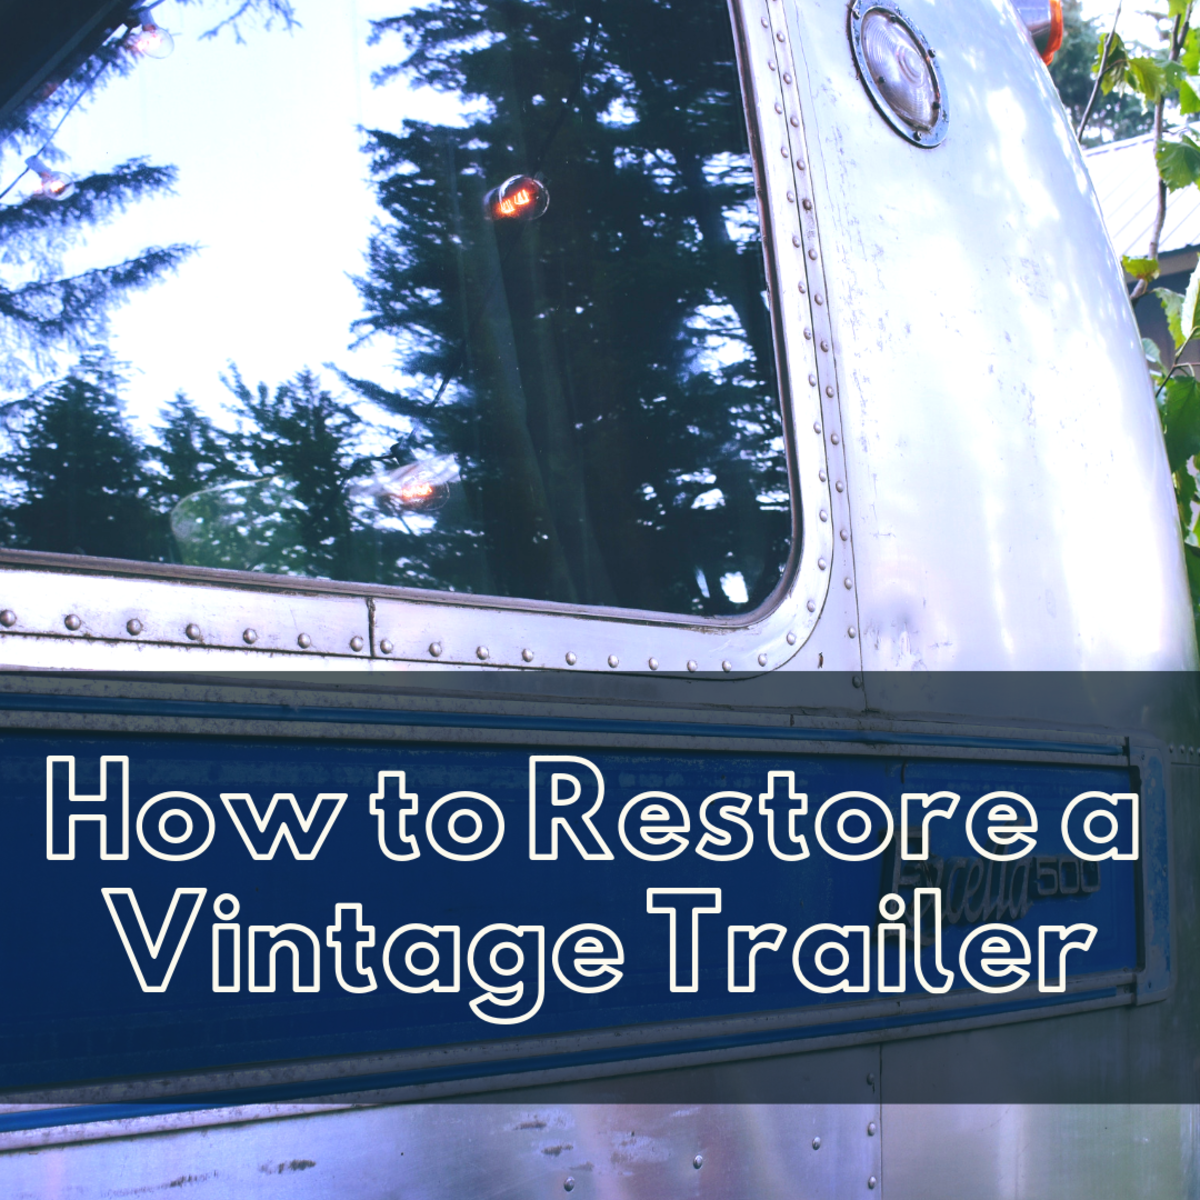 Restoration on a vintage trailer can be a challenge, but it is worth the effort.